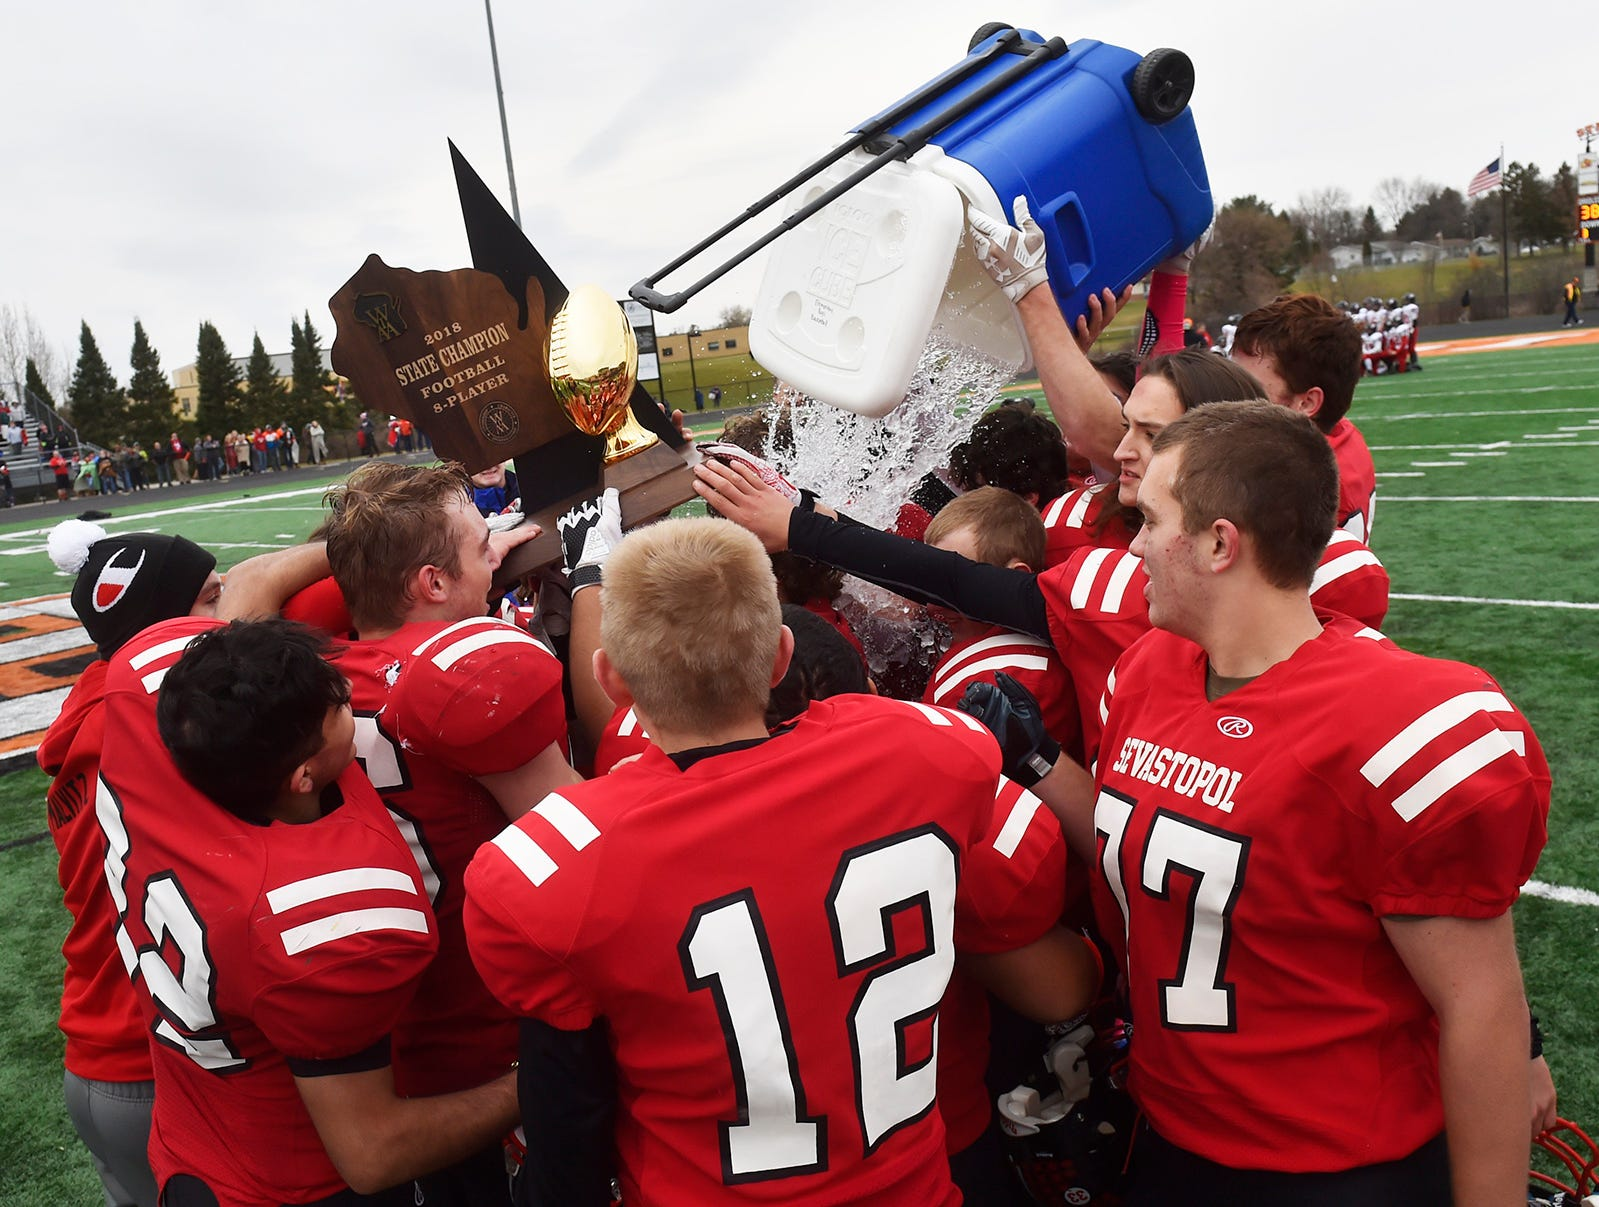 Celebrating the victory at the WIAA 8-Player State Championship game at Stanley-Boyd High School on Nov. 3, 2018. The Sevastopol Pioneers won their first state football title, 38-30. Tina M. Gohr/USA TODAY NETWORK-Wisconsin